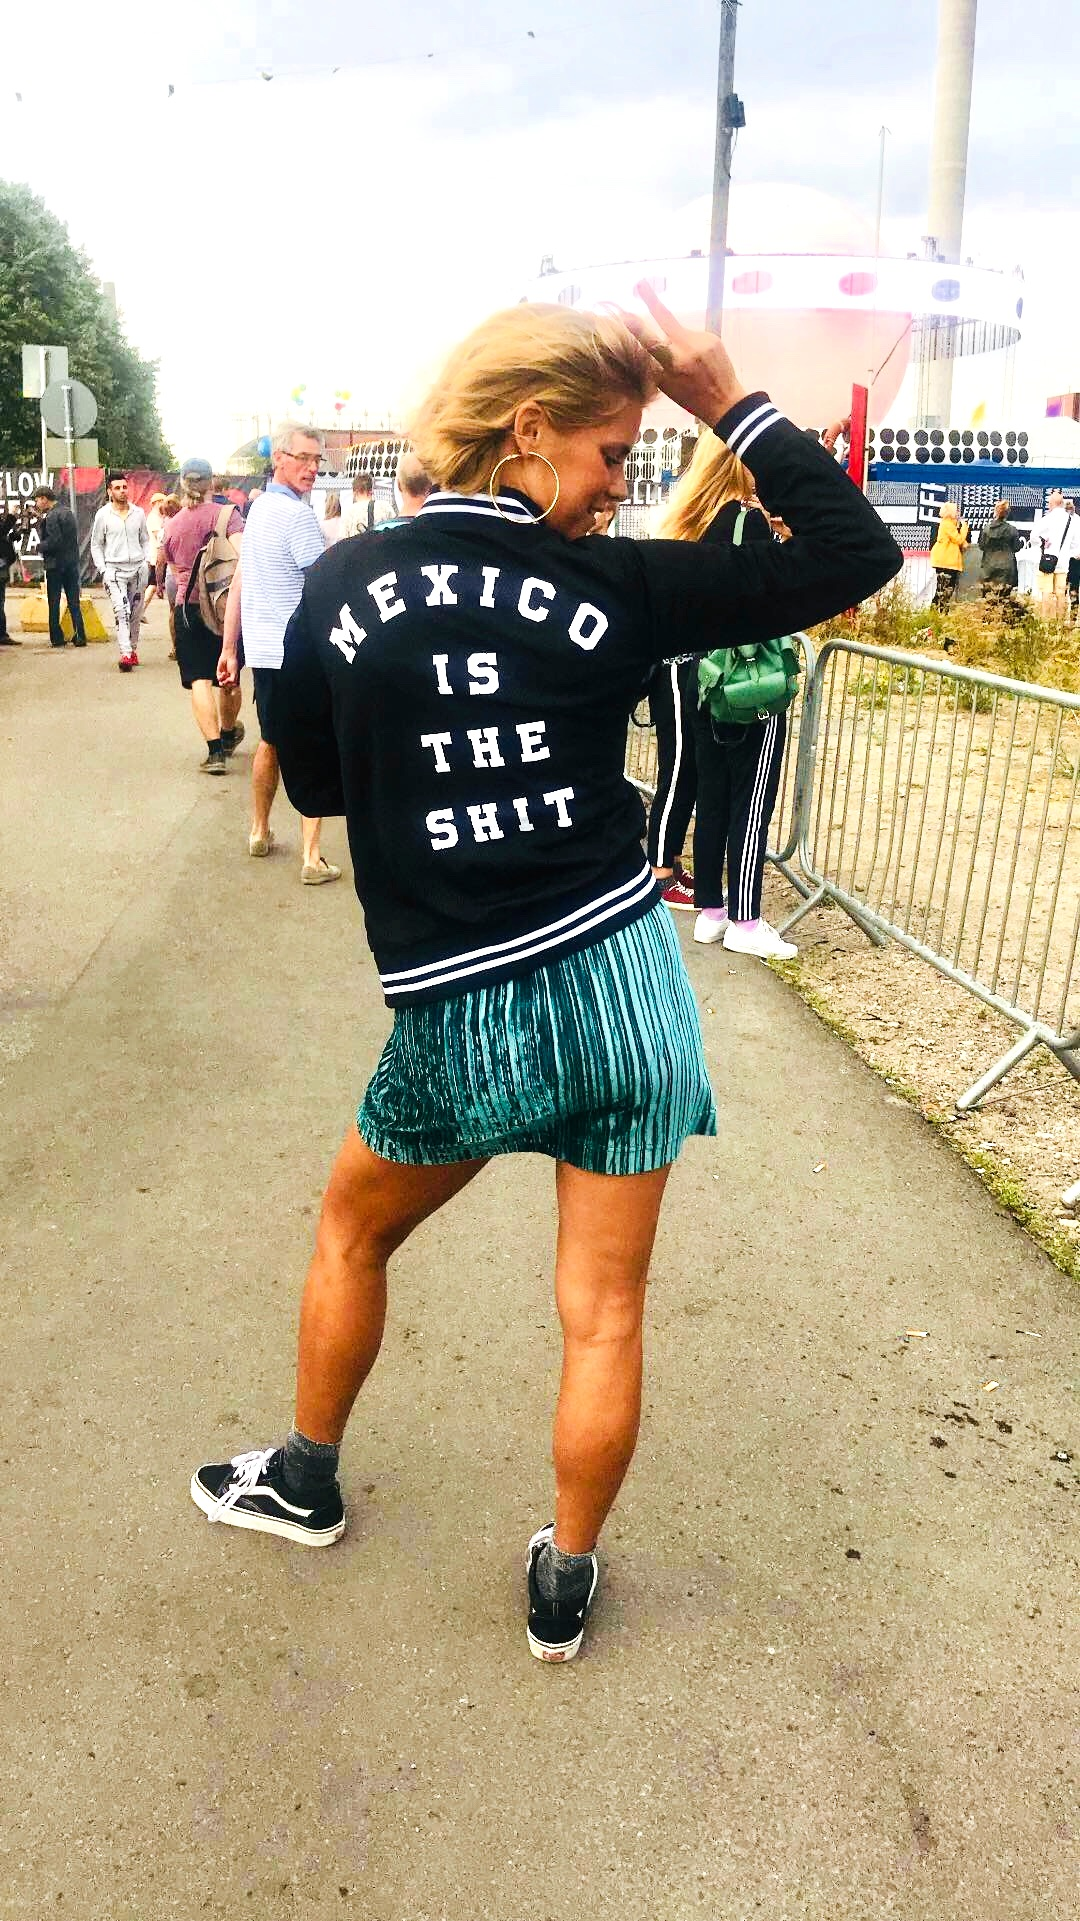 In Finland always loving Mexico. Photo taken at  Flow Festival  last summer.